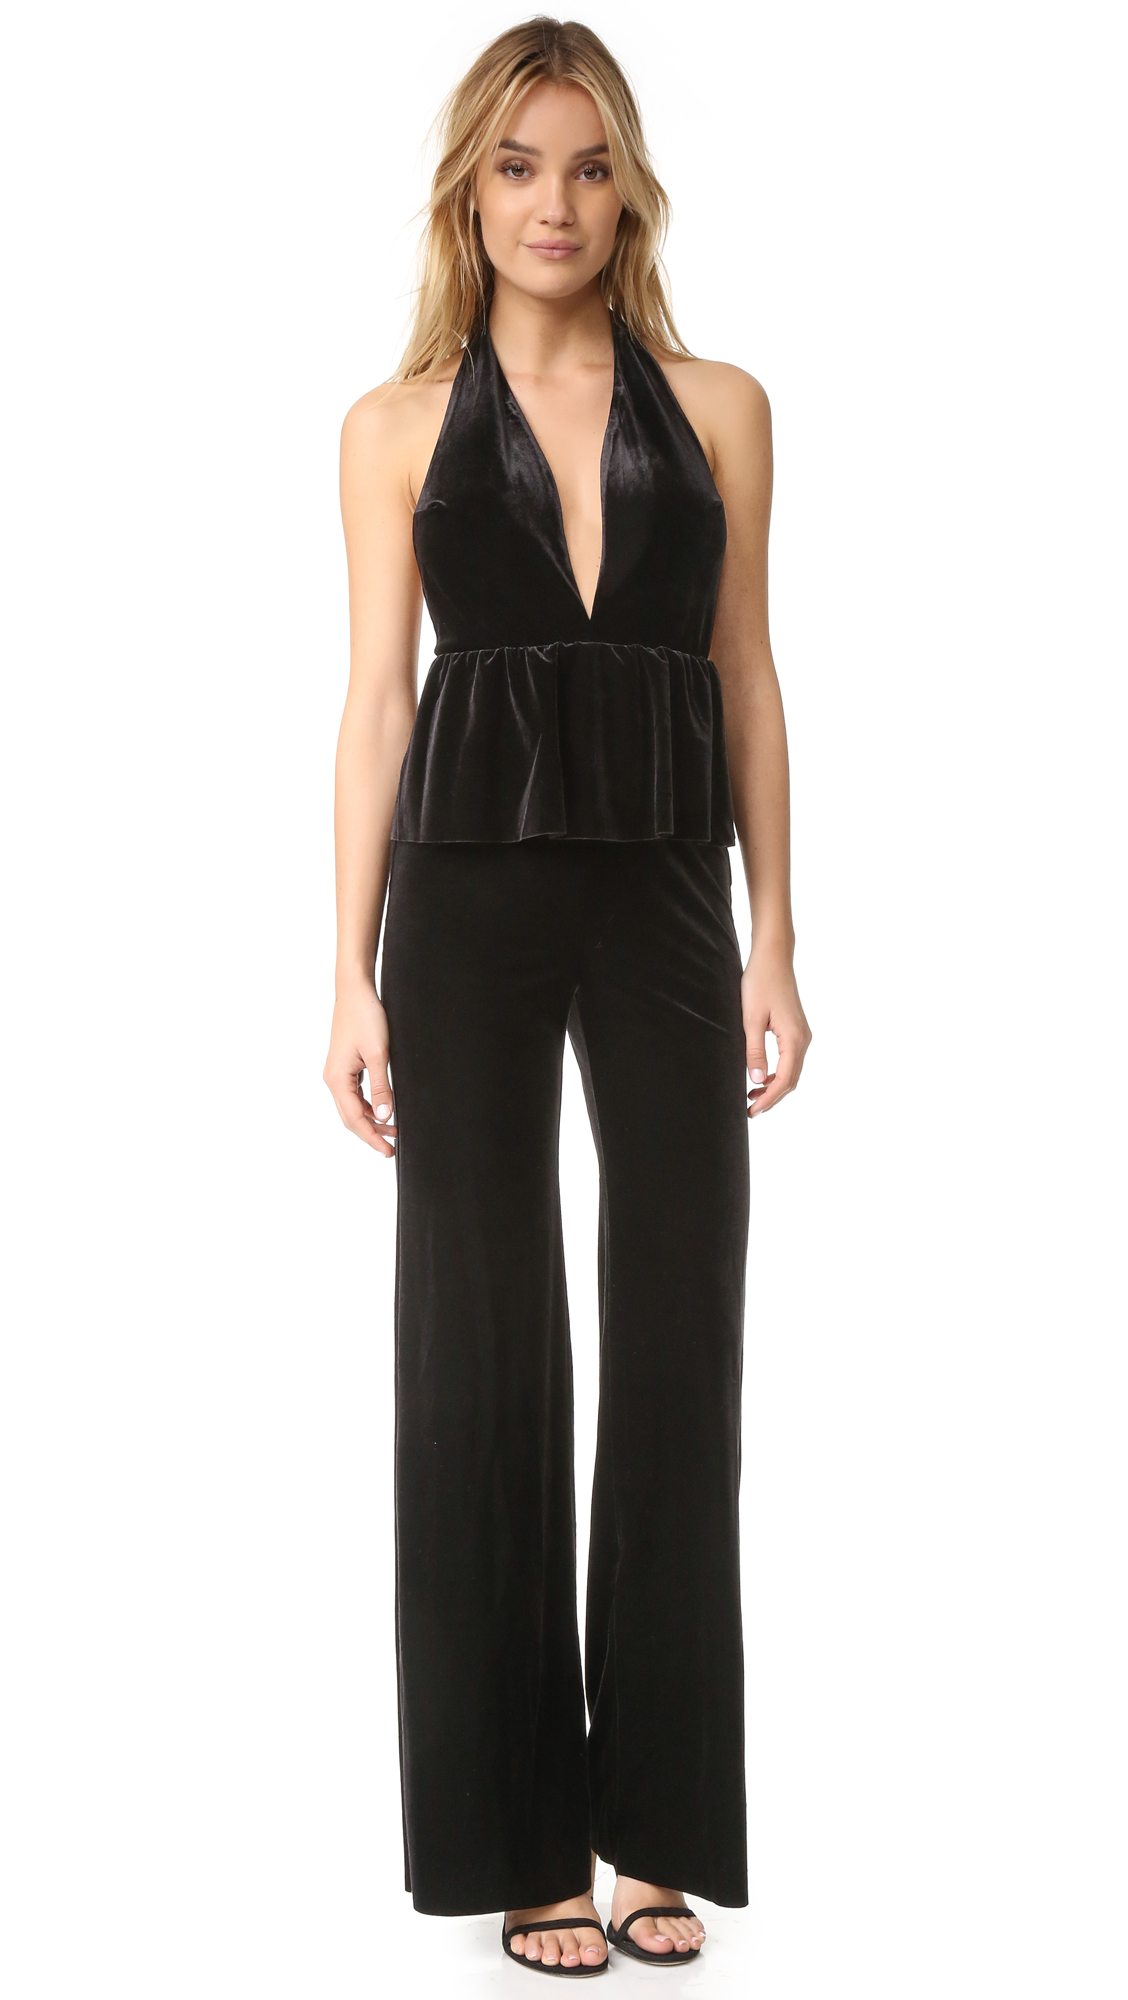 A velour Bec & Bridge jumpsuit in a fluid, wide leg silhouette. The halter bodice is styled with a plunging V neckline and a flounced ruffle at the waist. Raw hems. Hidden back zip. Fabric: Velour. Shell: 90%